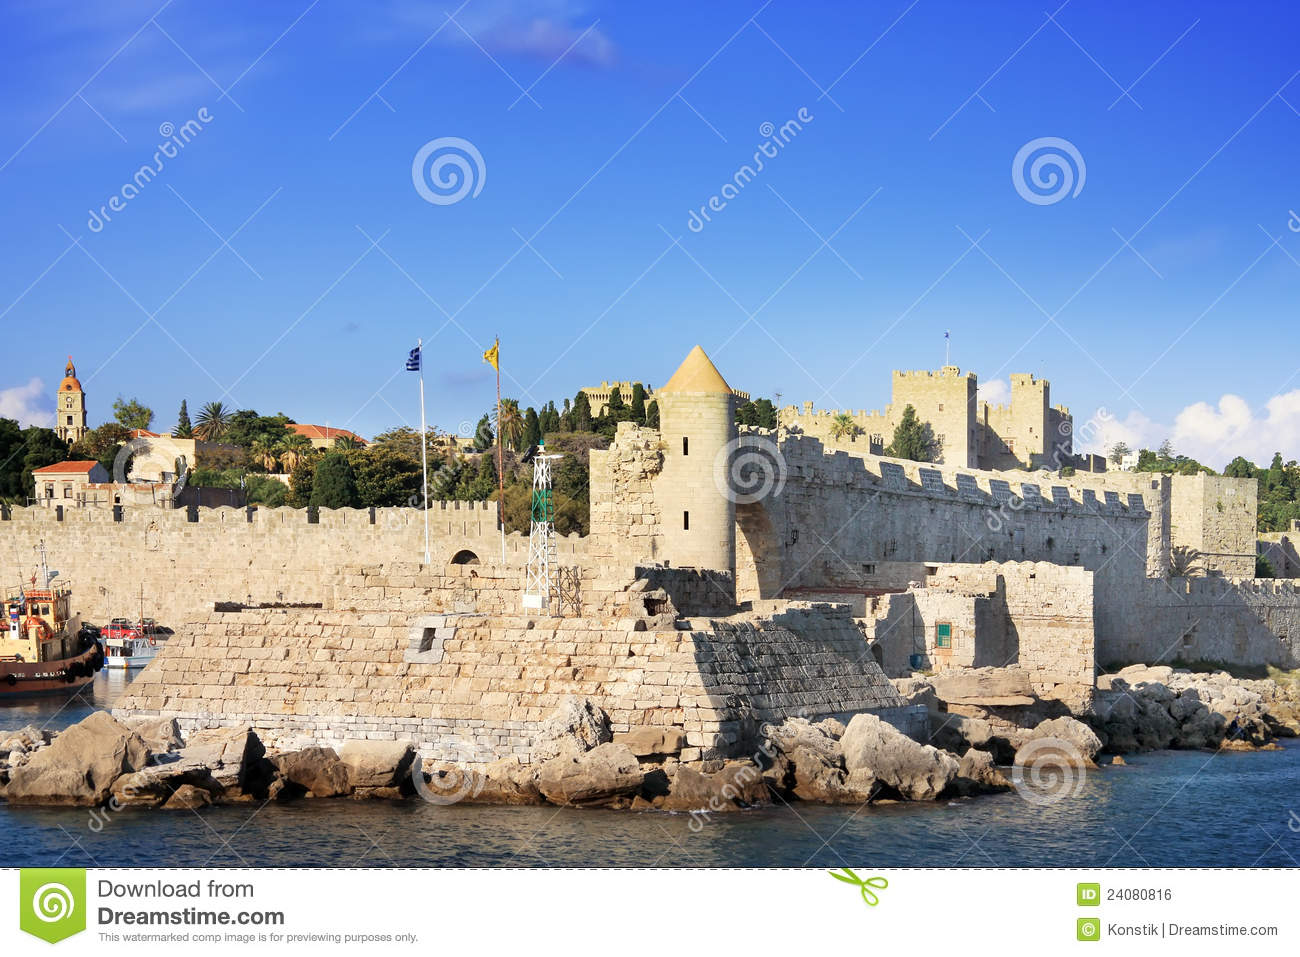 Rhodes.City Landscape In A Sunny Day Royalty Free Stock Image - Image ...